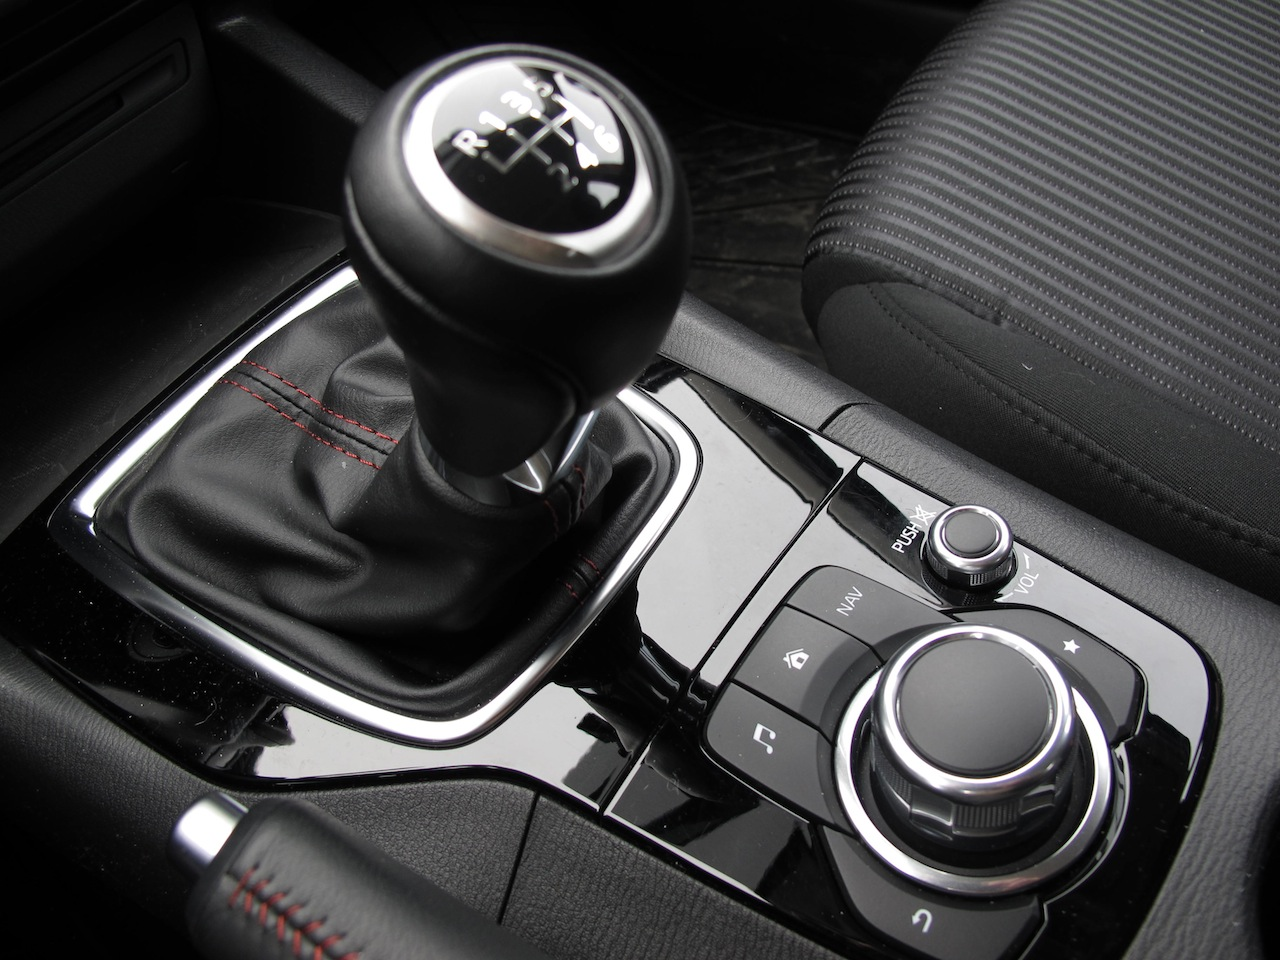 2014 mazda3 sport gs photo gallery cars photos test drives and reviews canadian auto review. Black Bedroom Furniture Sets. Home Design Ideas